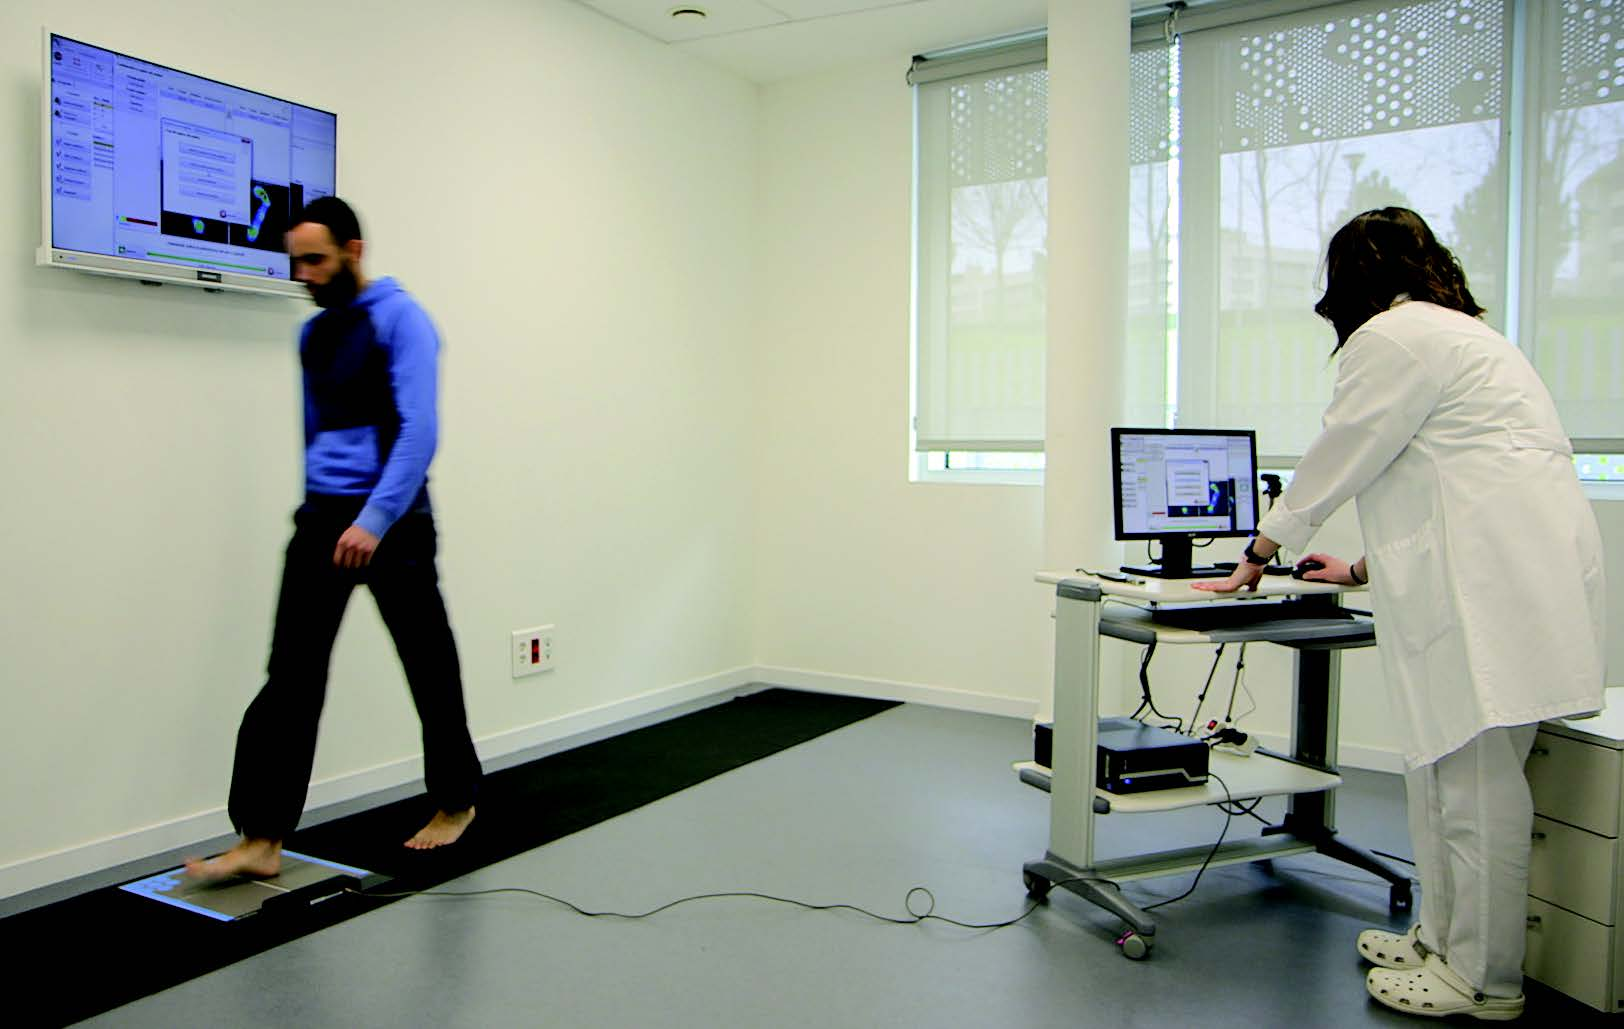 Patient using the laboratory of biomechanics of Mutua Universal